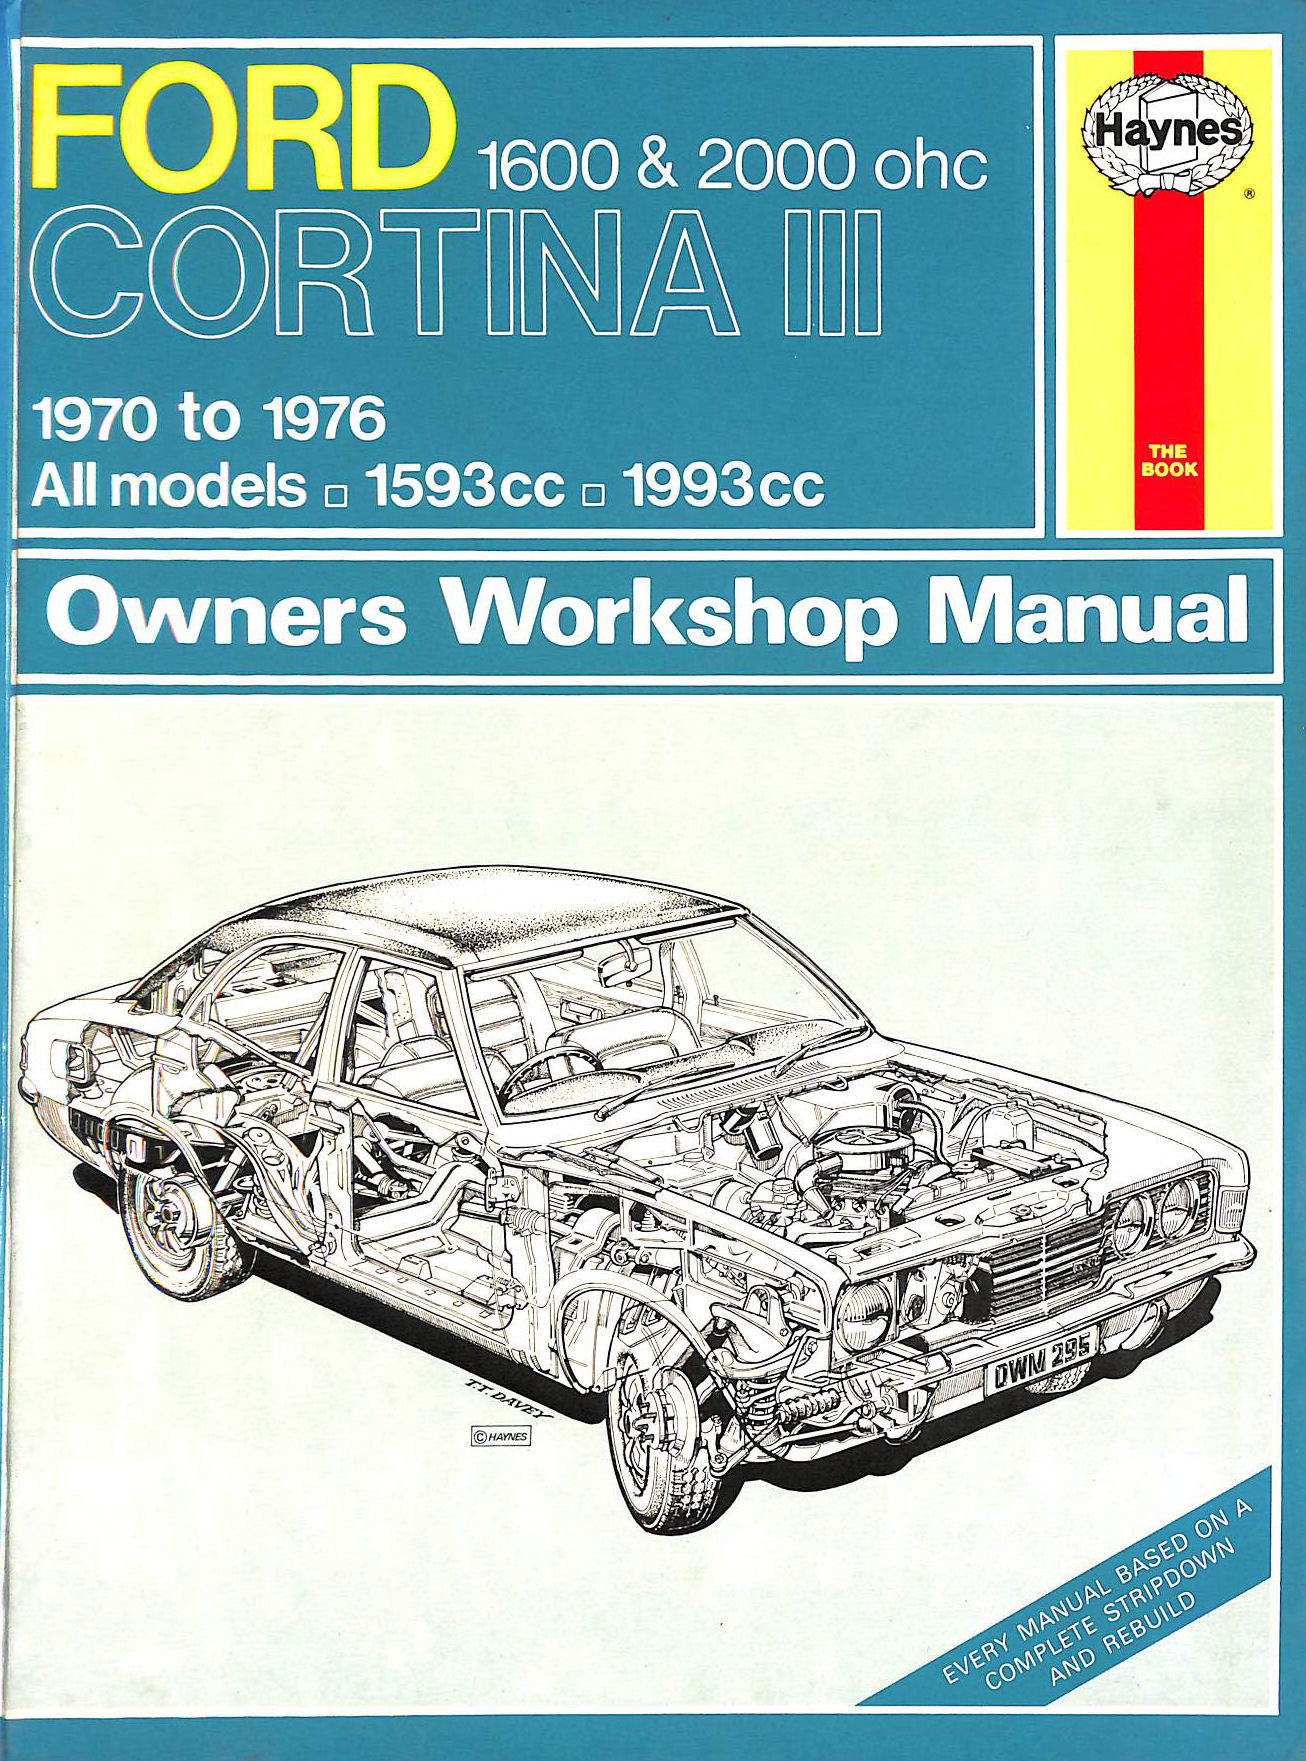 Image for Ford Cortina Mk.III 1600 and 2000 O.H.C.Owner's Workshop Manual (Service & repair manuals)